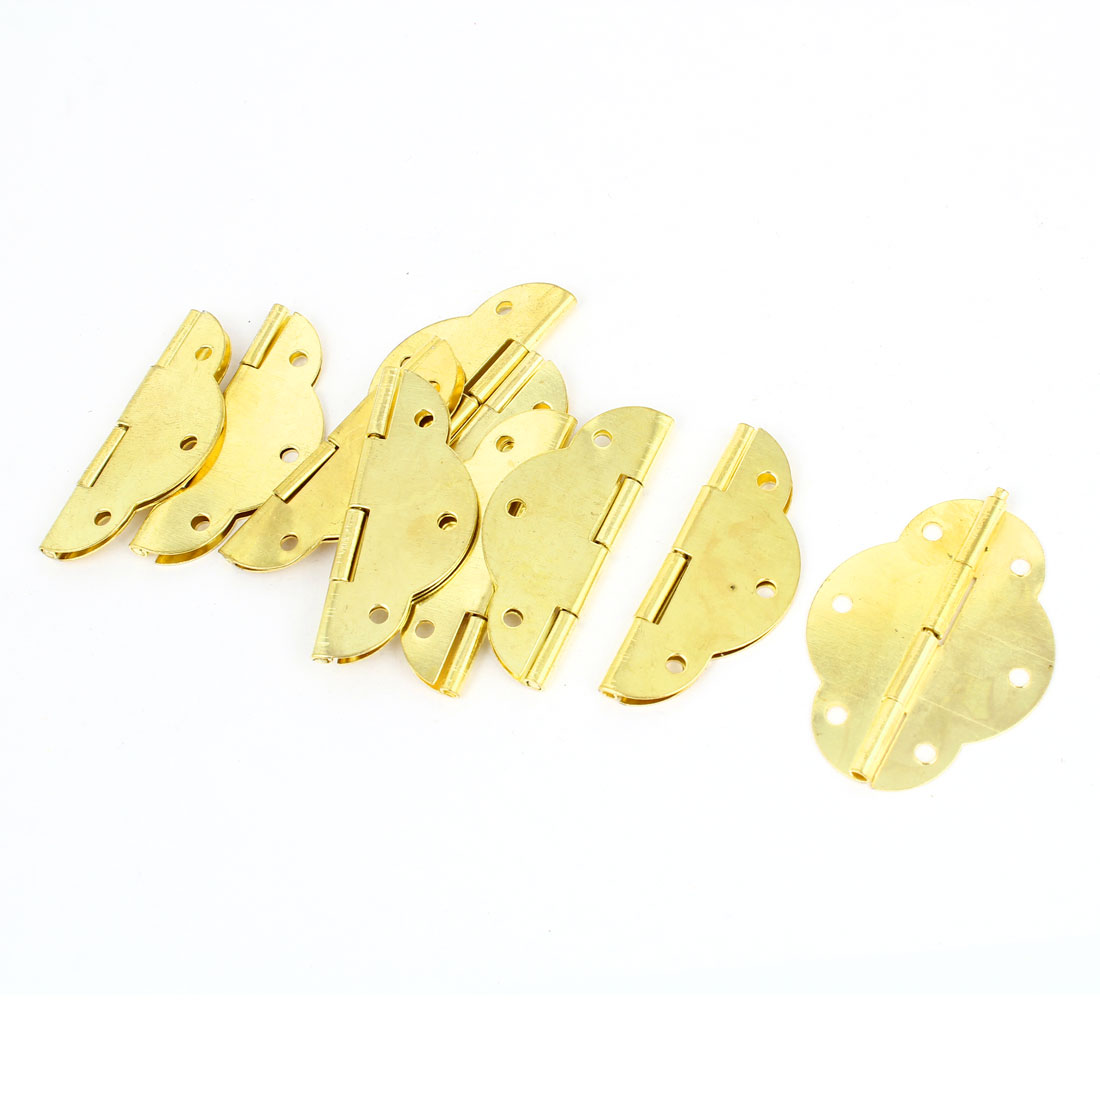 10 Pcs Gold Tone Rotatable Window Drawer Door Butt Hinges 4.5cm Long